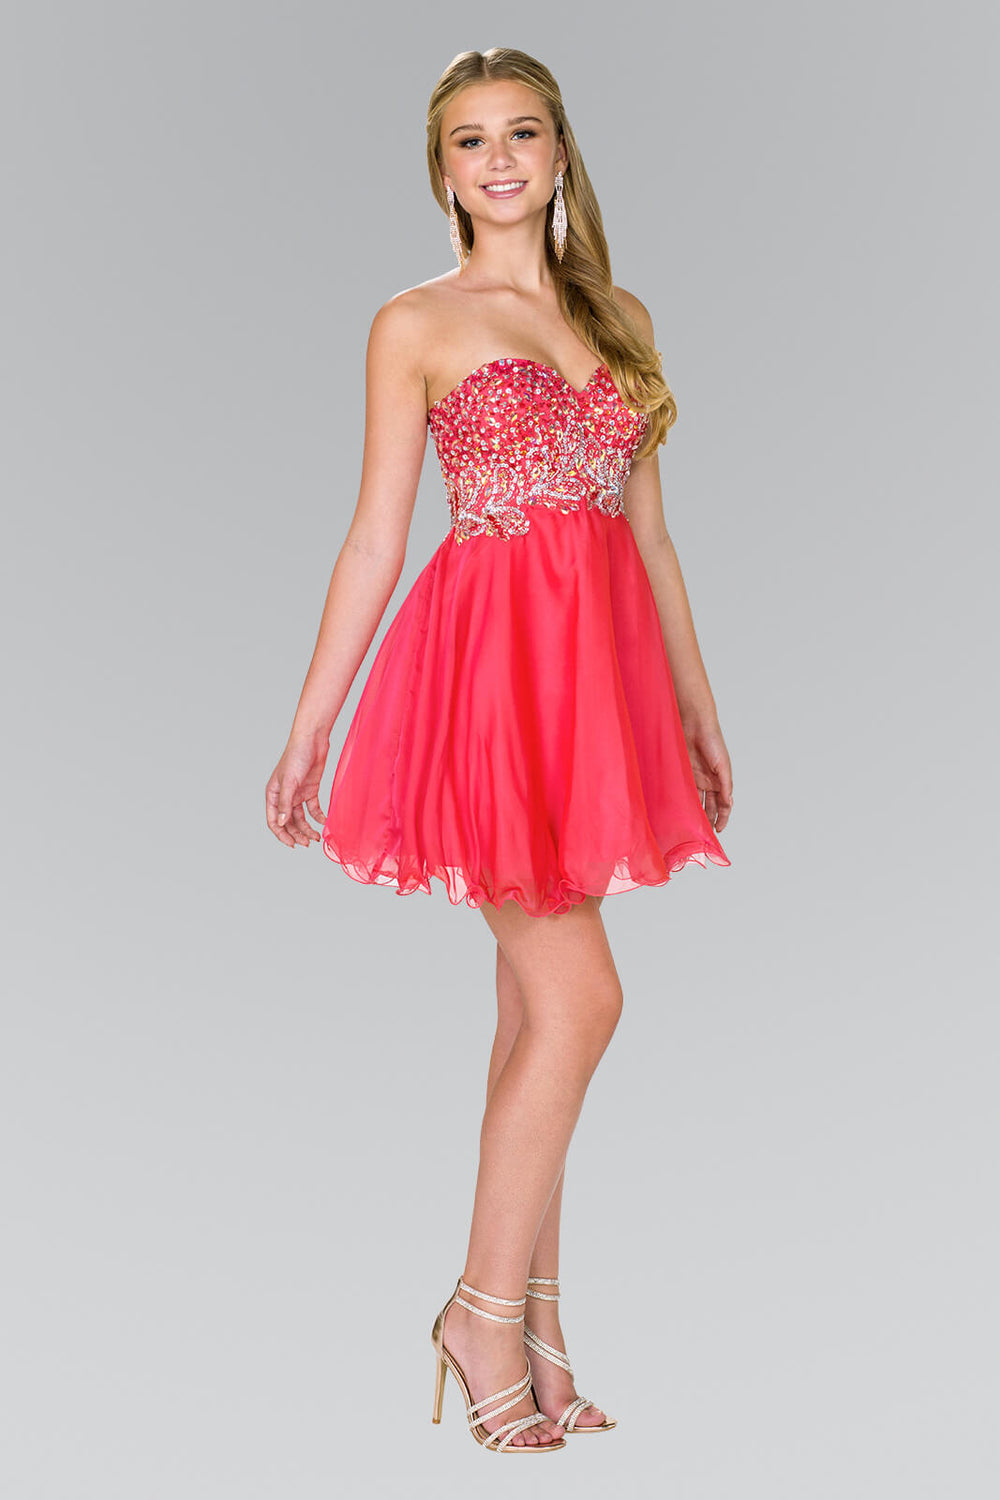 Strapless Prom Short Dress Homecoming - The Dress Outlet Watermelon